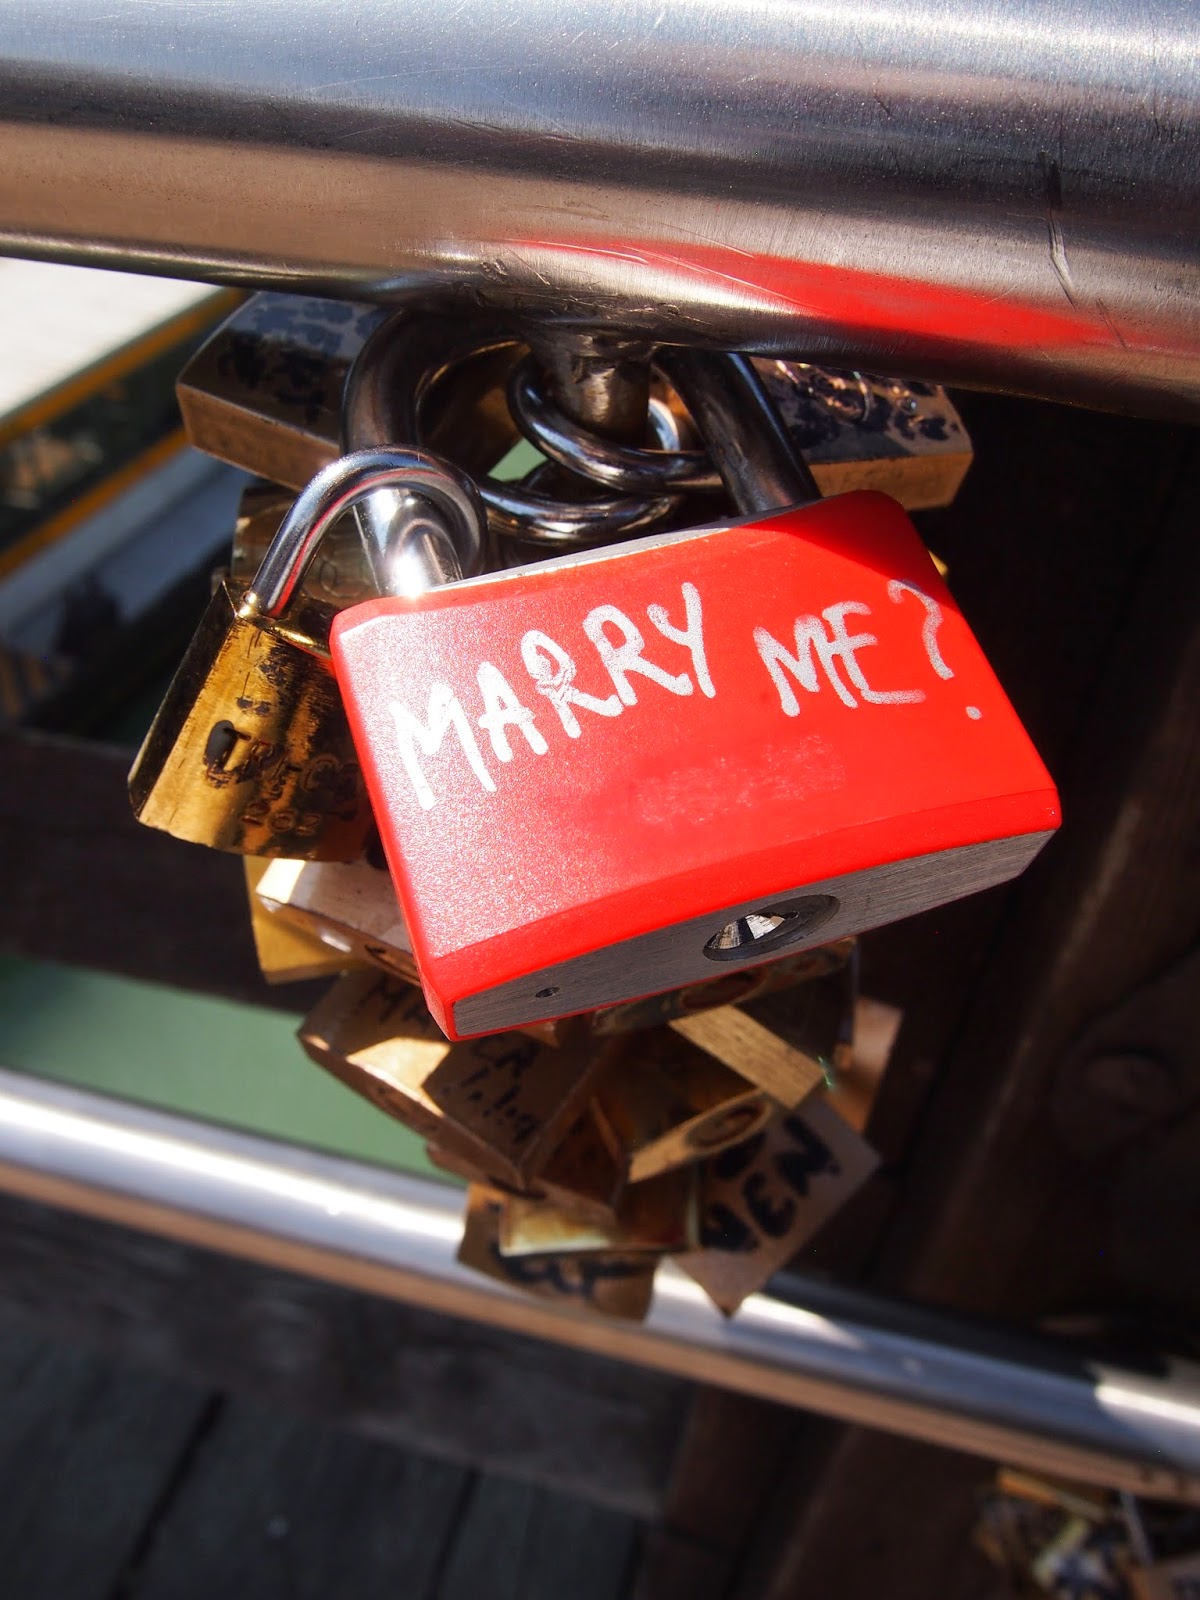 a marry me love lock